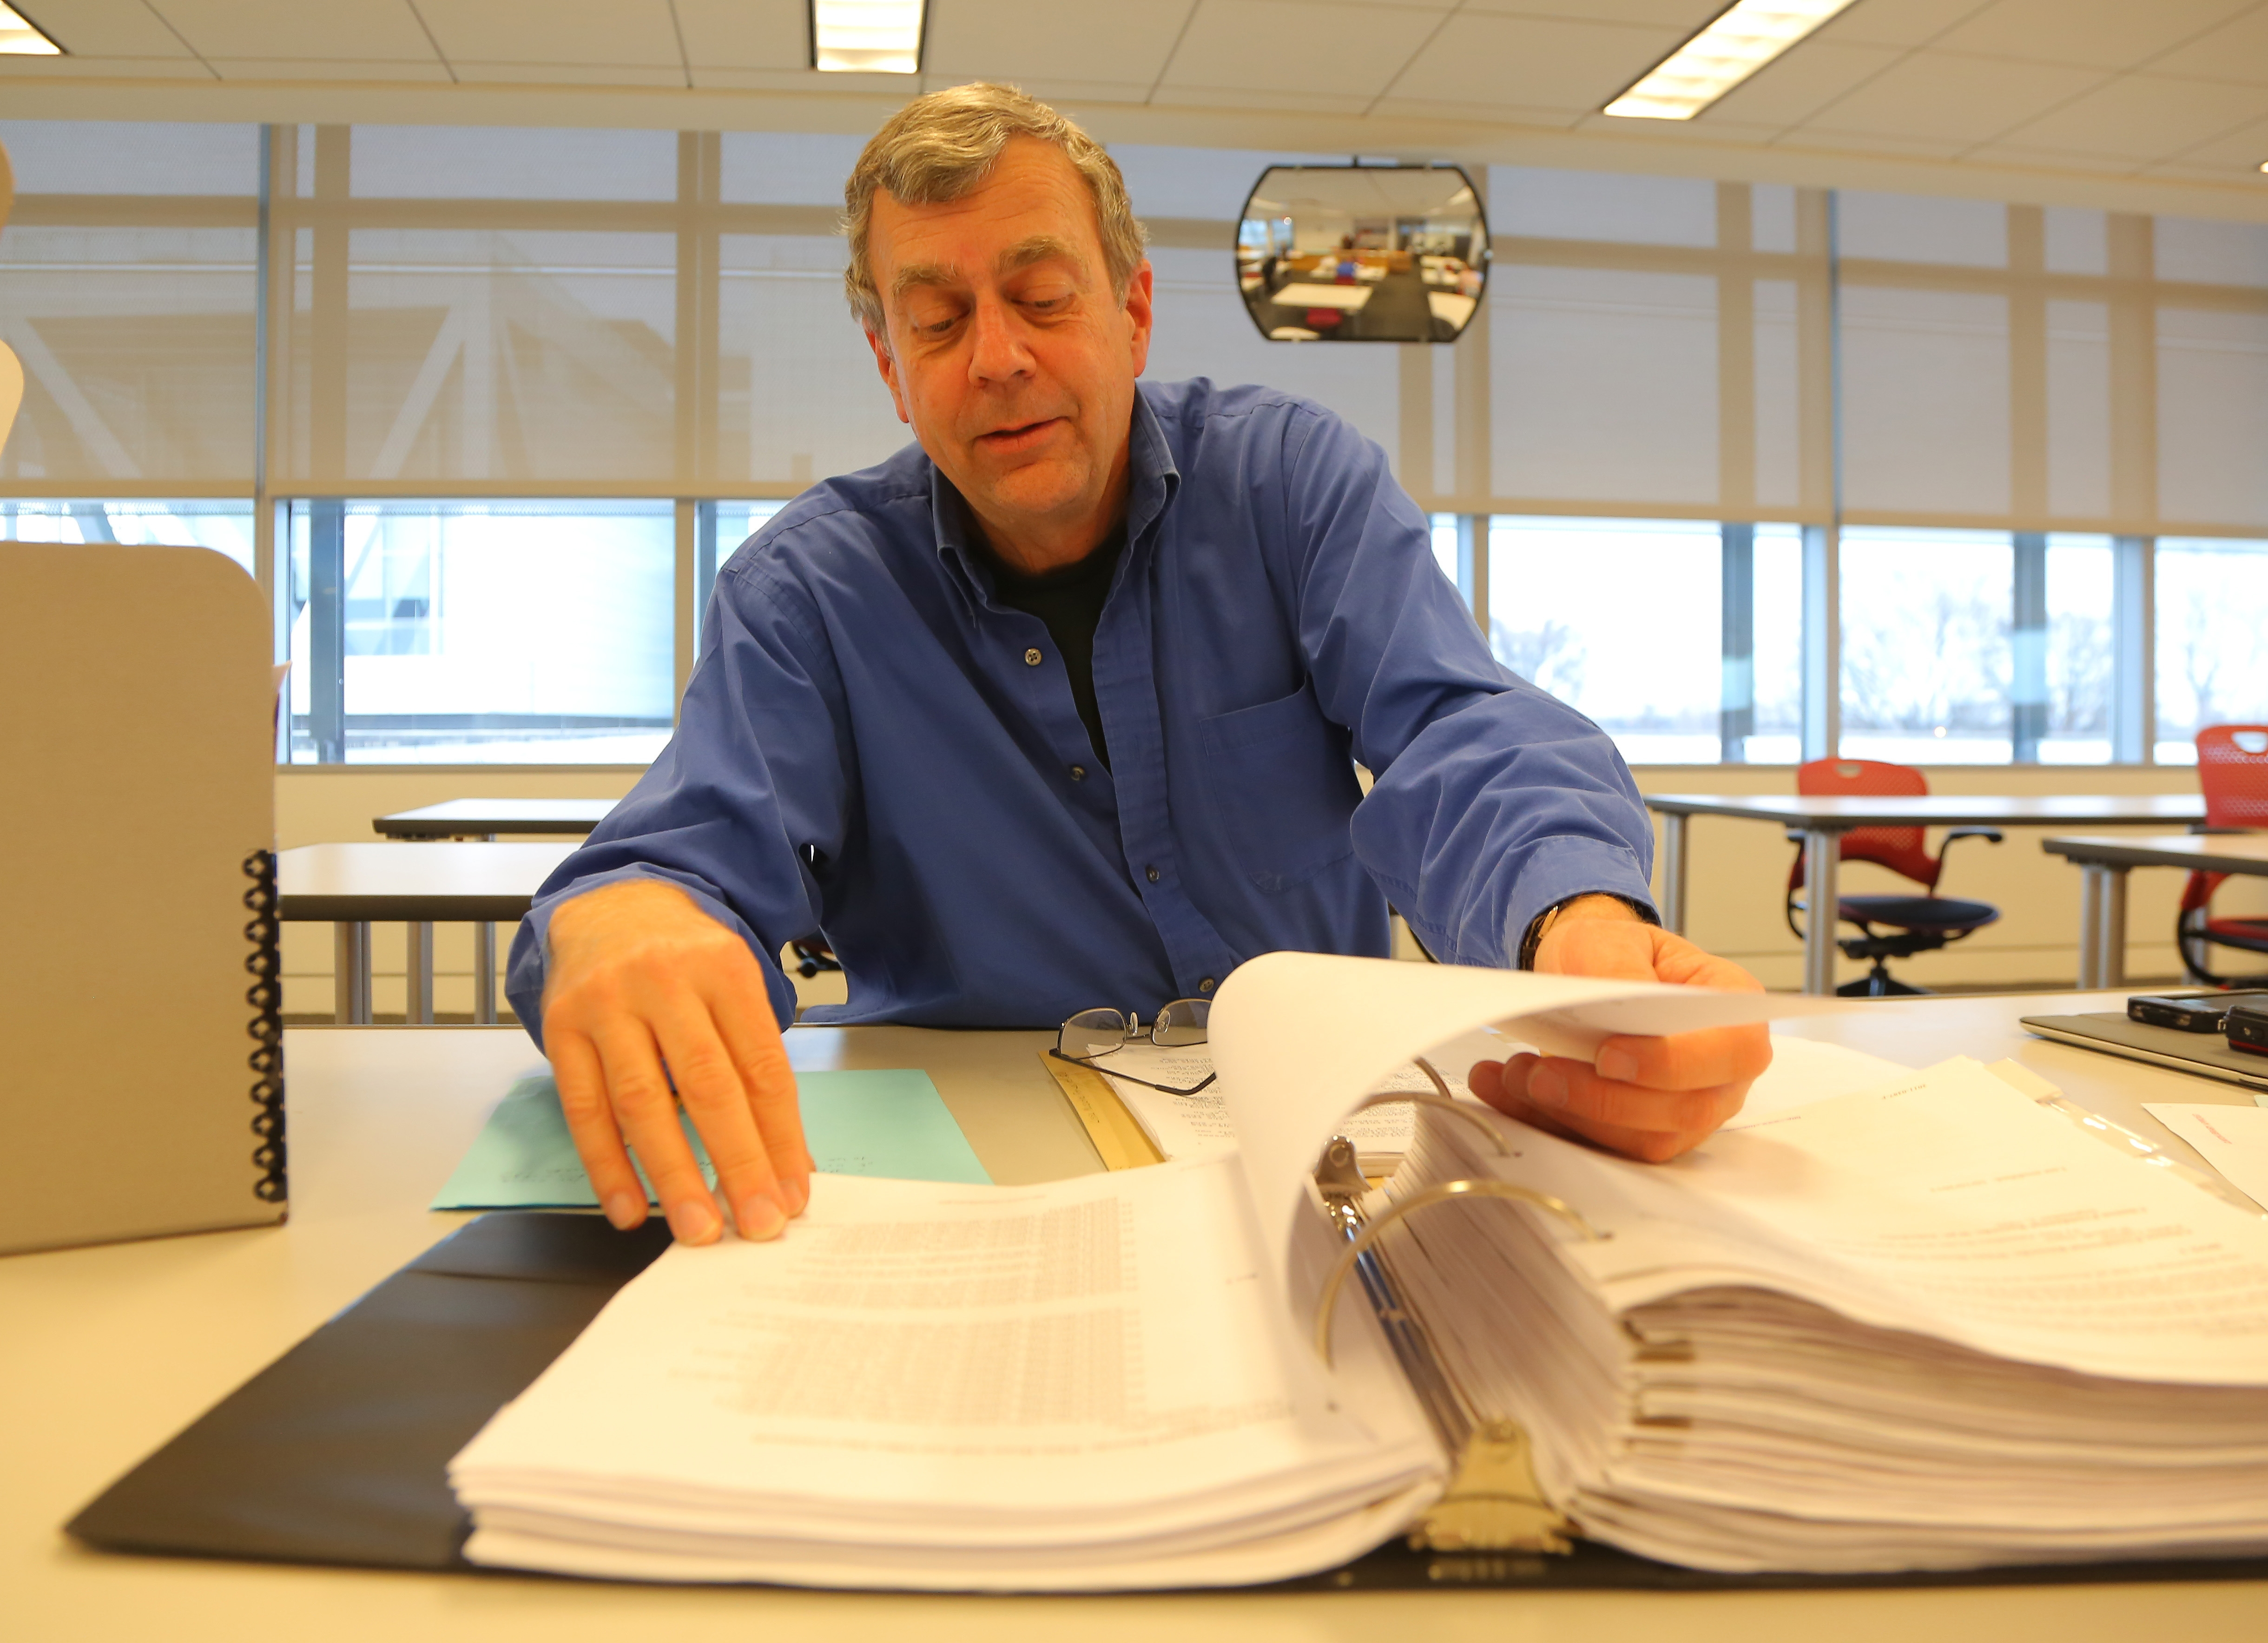 Ron Blome, a freelance news producer for NBC News, sorts through pages of Clinton administration documents inside a research room at the William J. Clinton Presidential Library and Museum after their release to the public on Friday.